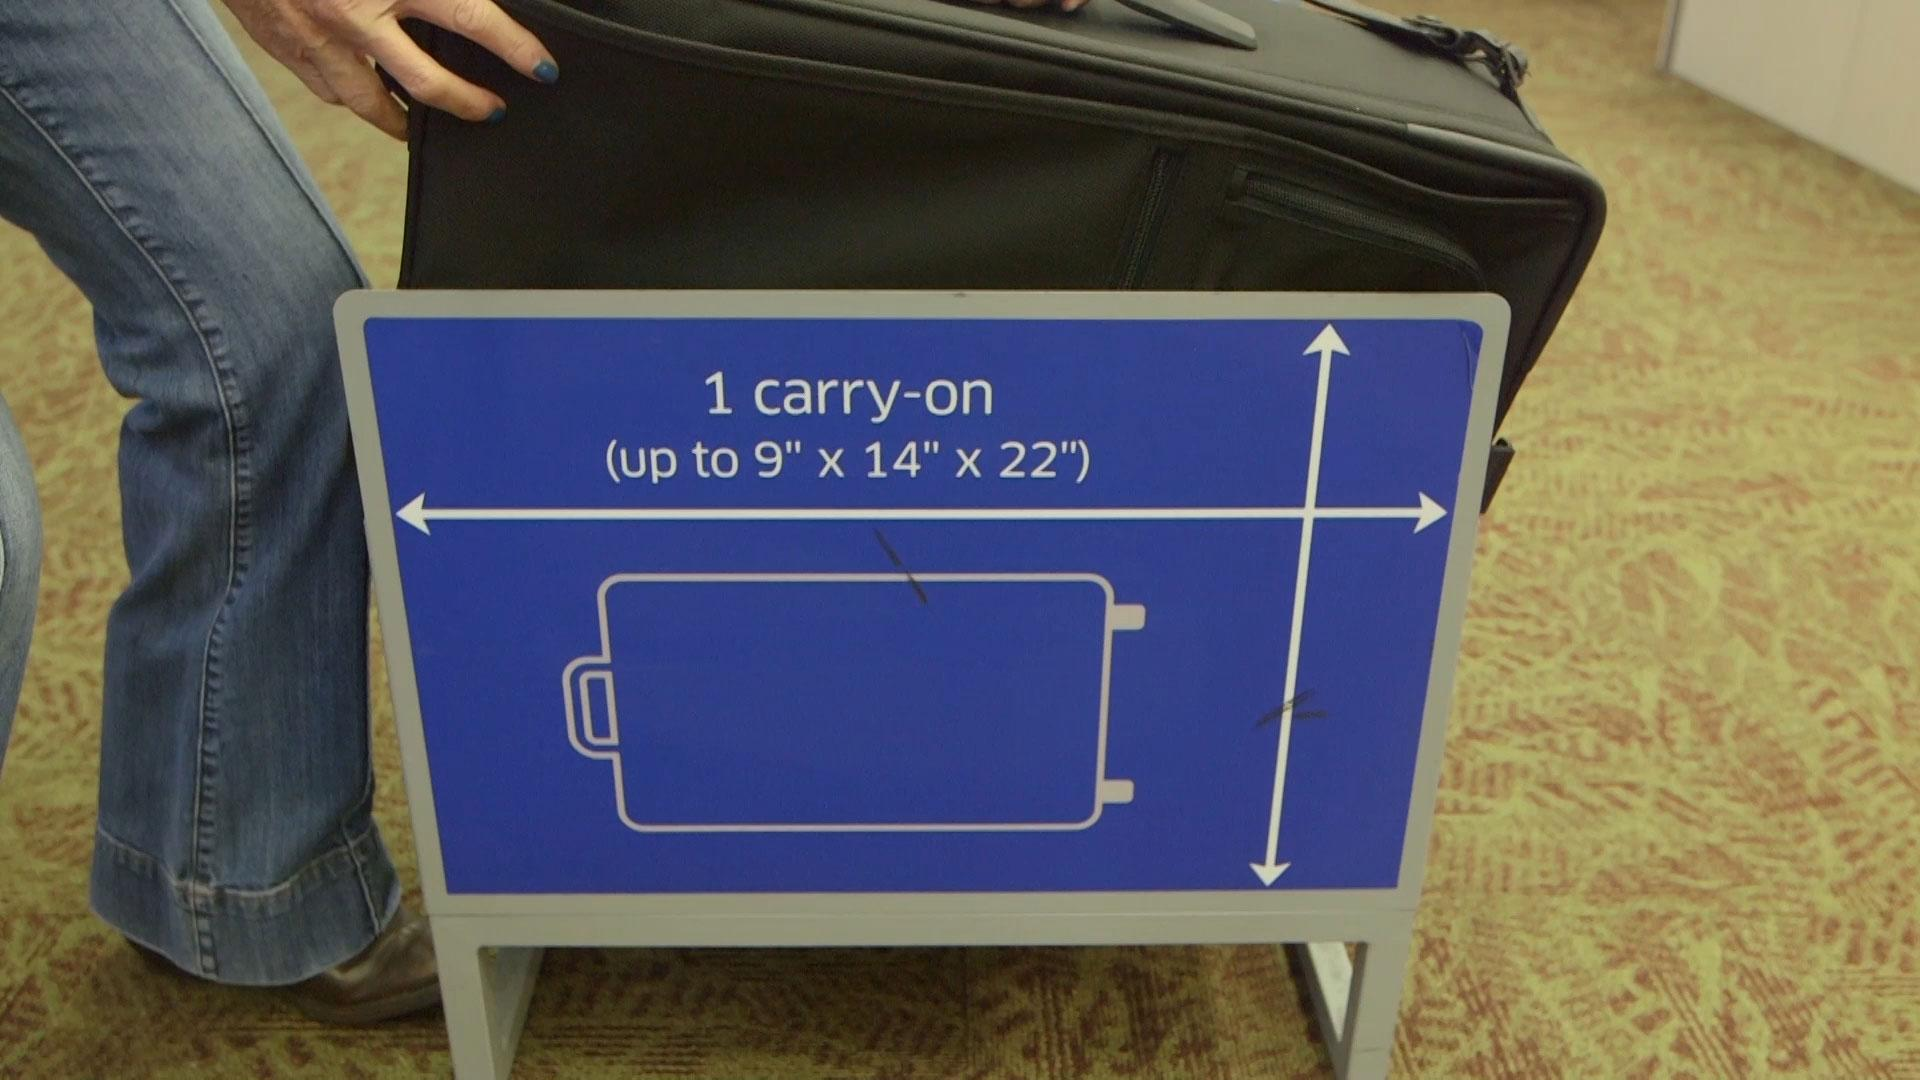 bbbab47cfc Finding Carry-on Luggage That Fits Overhead